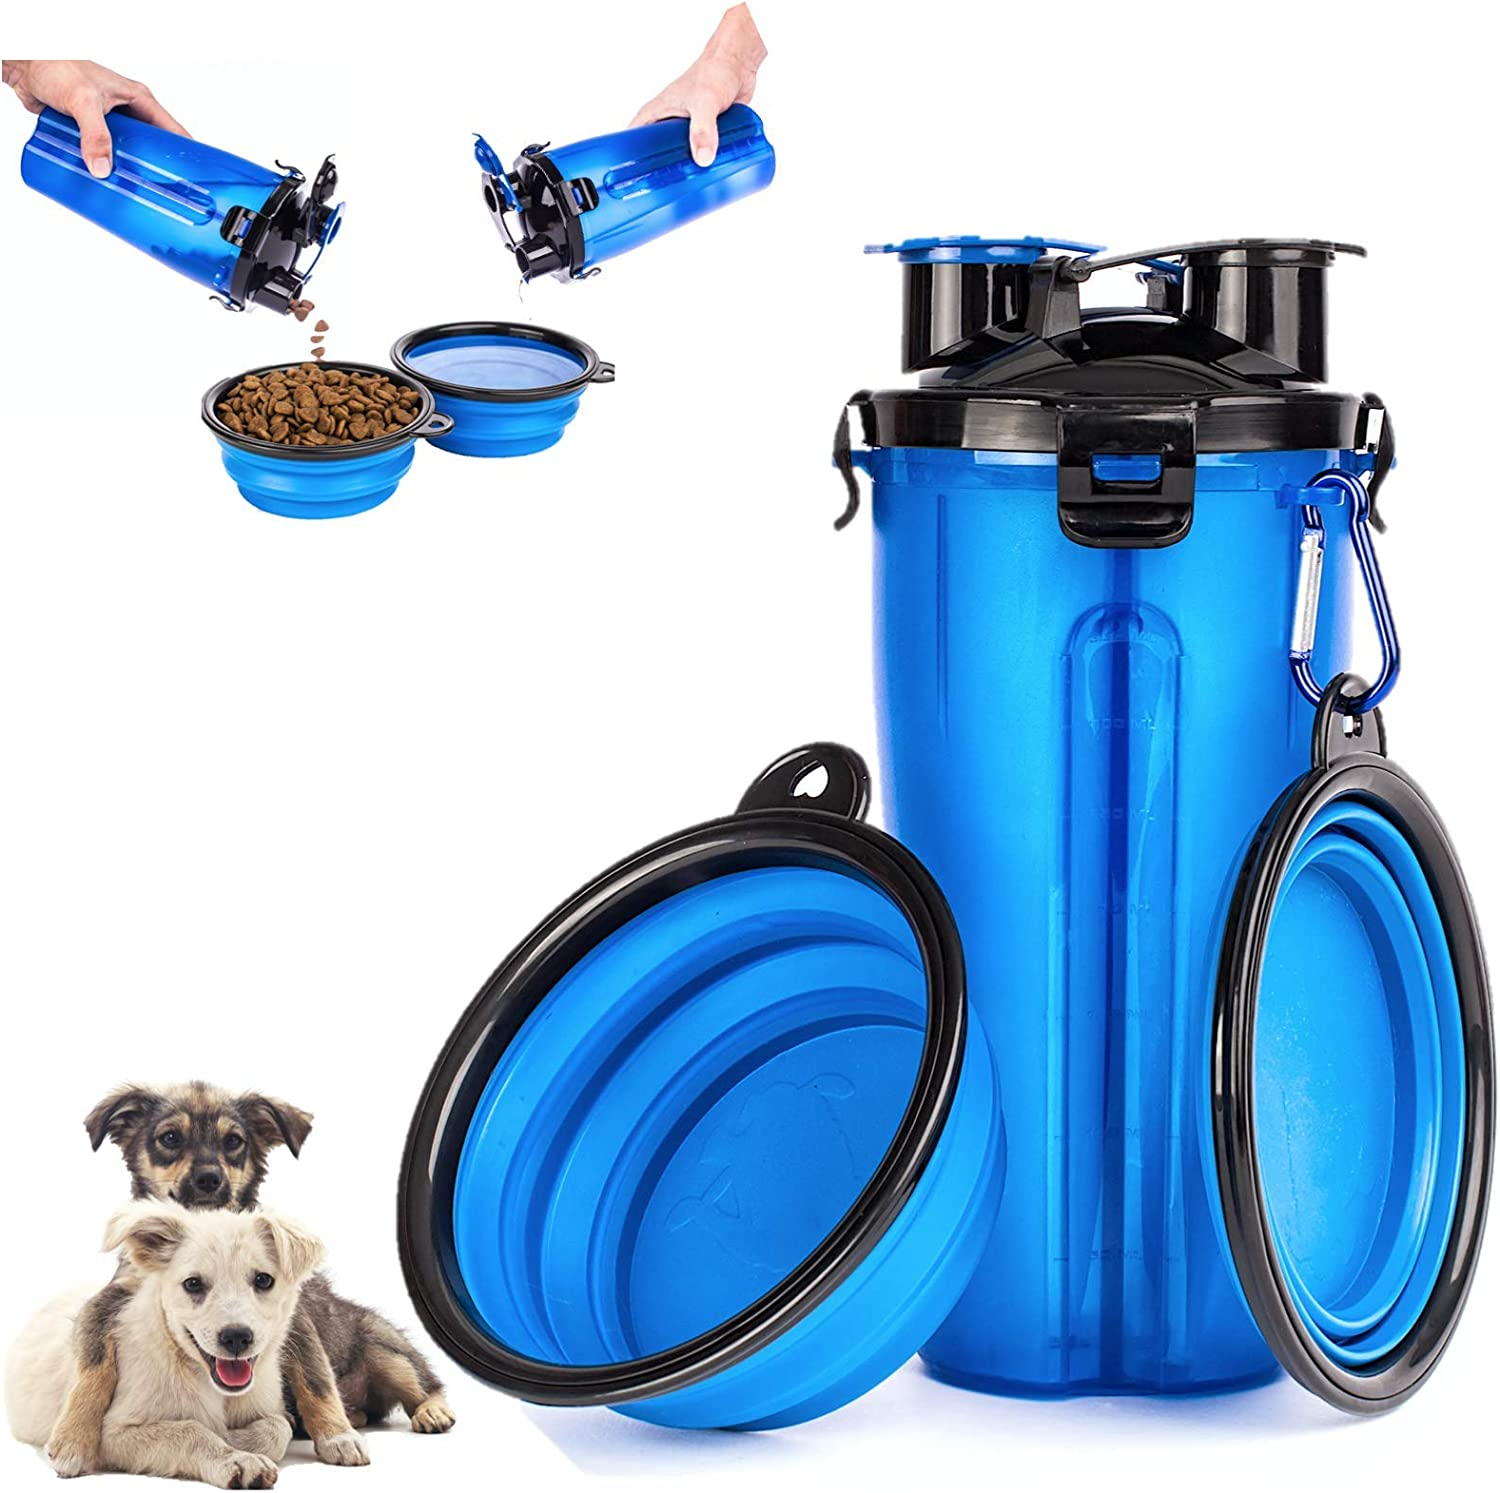 MelPet Portable Dog Water & Food Bottle with 2 Collapsible Bowls for Travelling Outdoor Water Dispenser and Food Container, Light Weight Easy to Clean